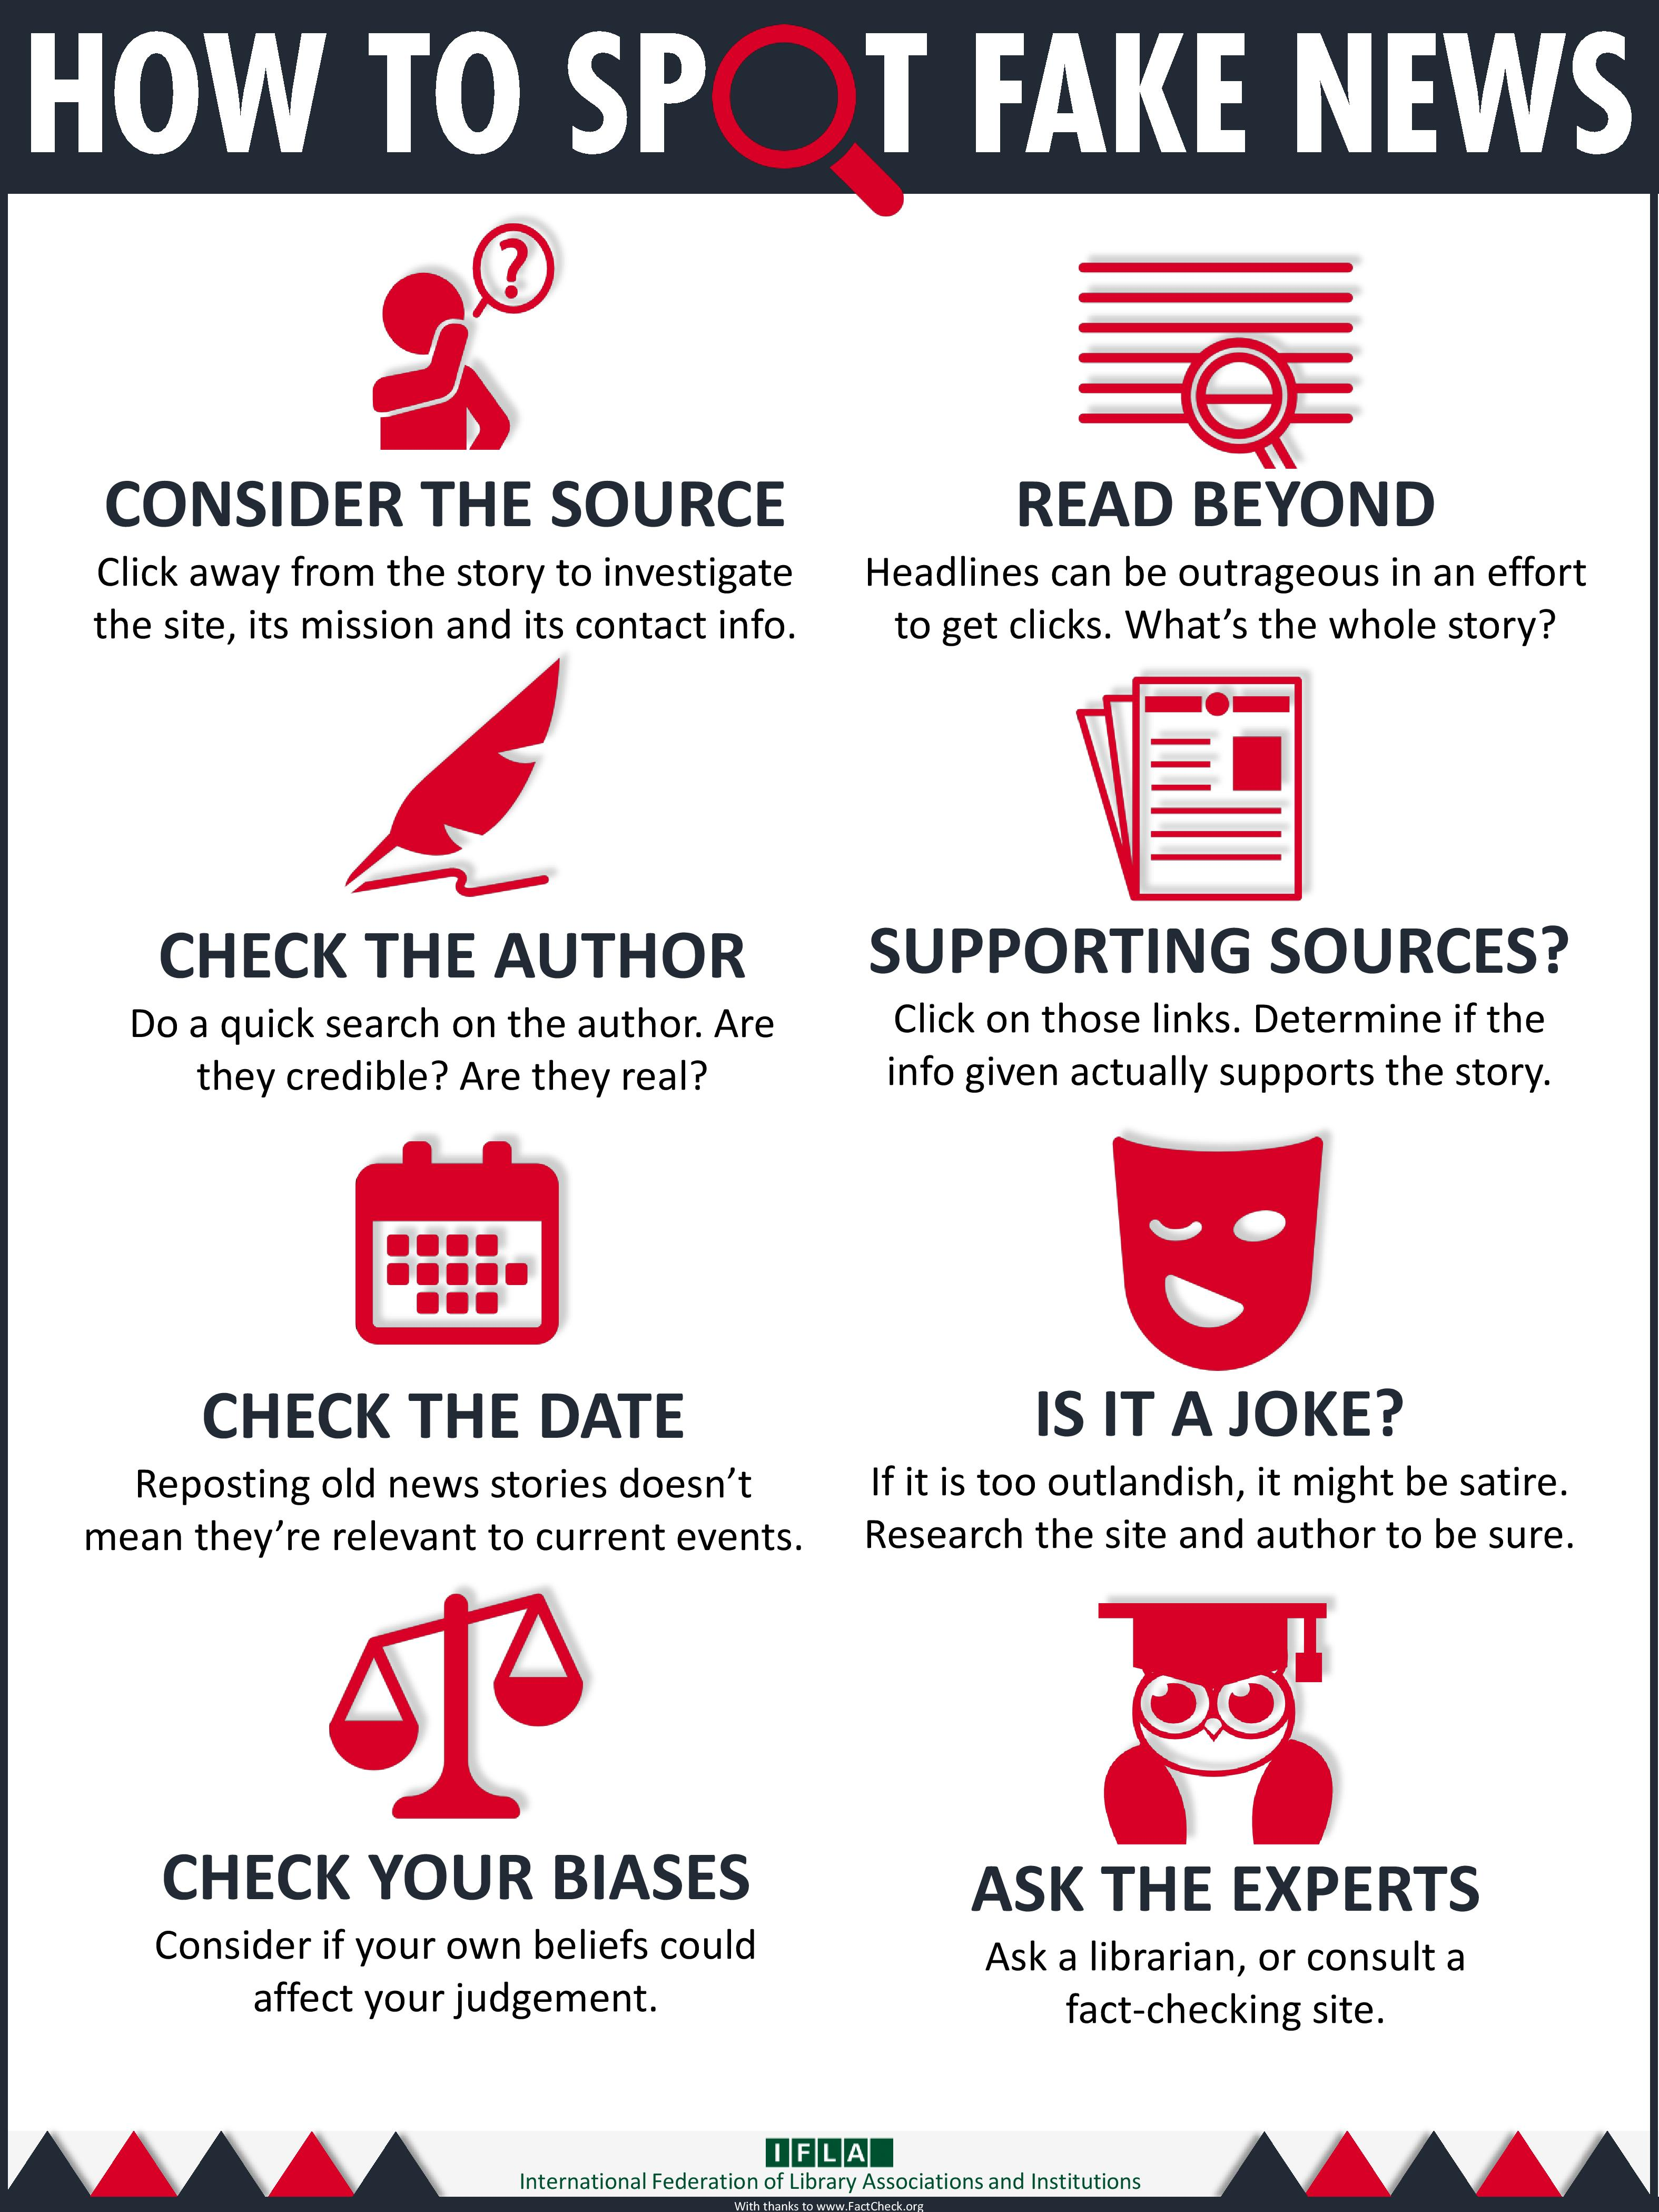 How to Spot Fake News from IFLA